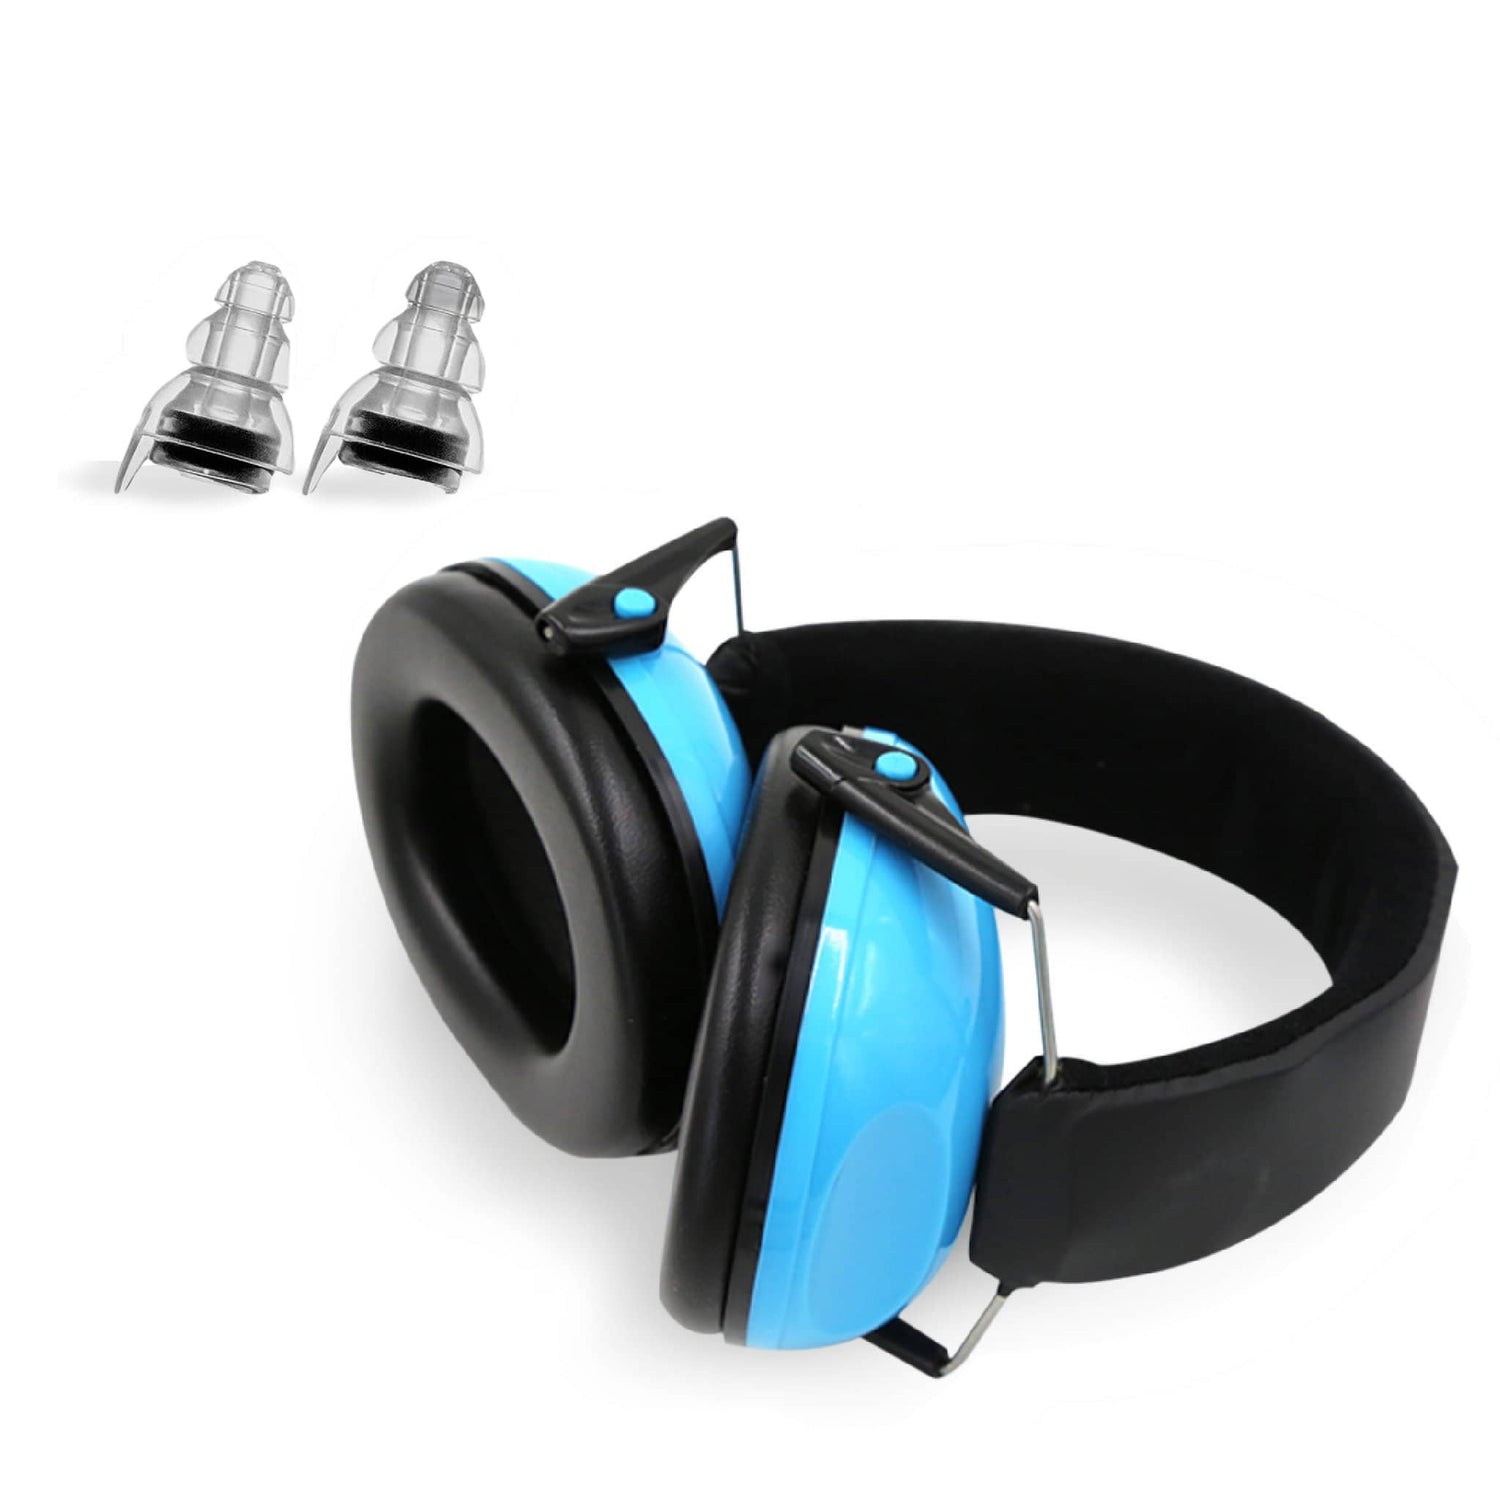 Sensory Earmuffs Kit - Includes Noise Reducing Earplugs